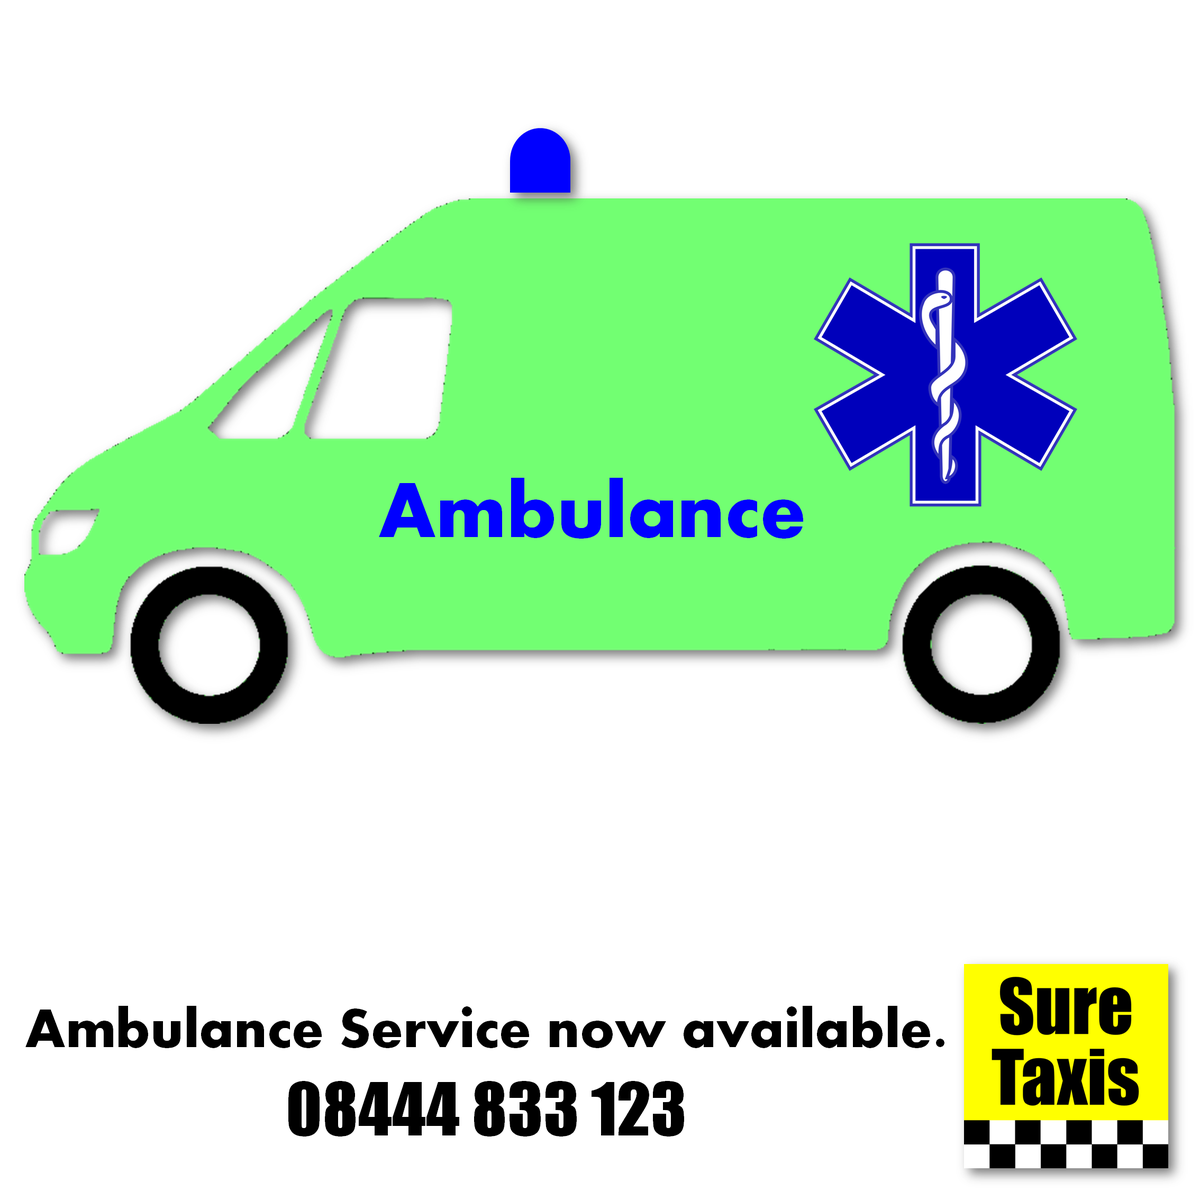 We now offer 60+ ambulances on call around #Kolkata. Save our number, it could save a life: 08444833123 http://t.co/j2Go0kOFY4